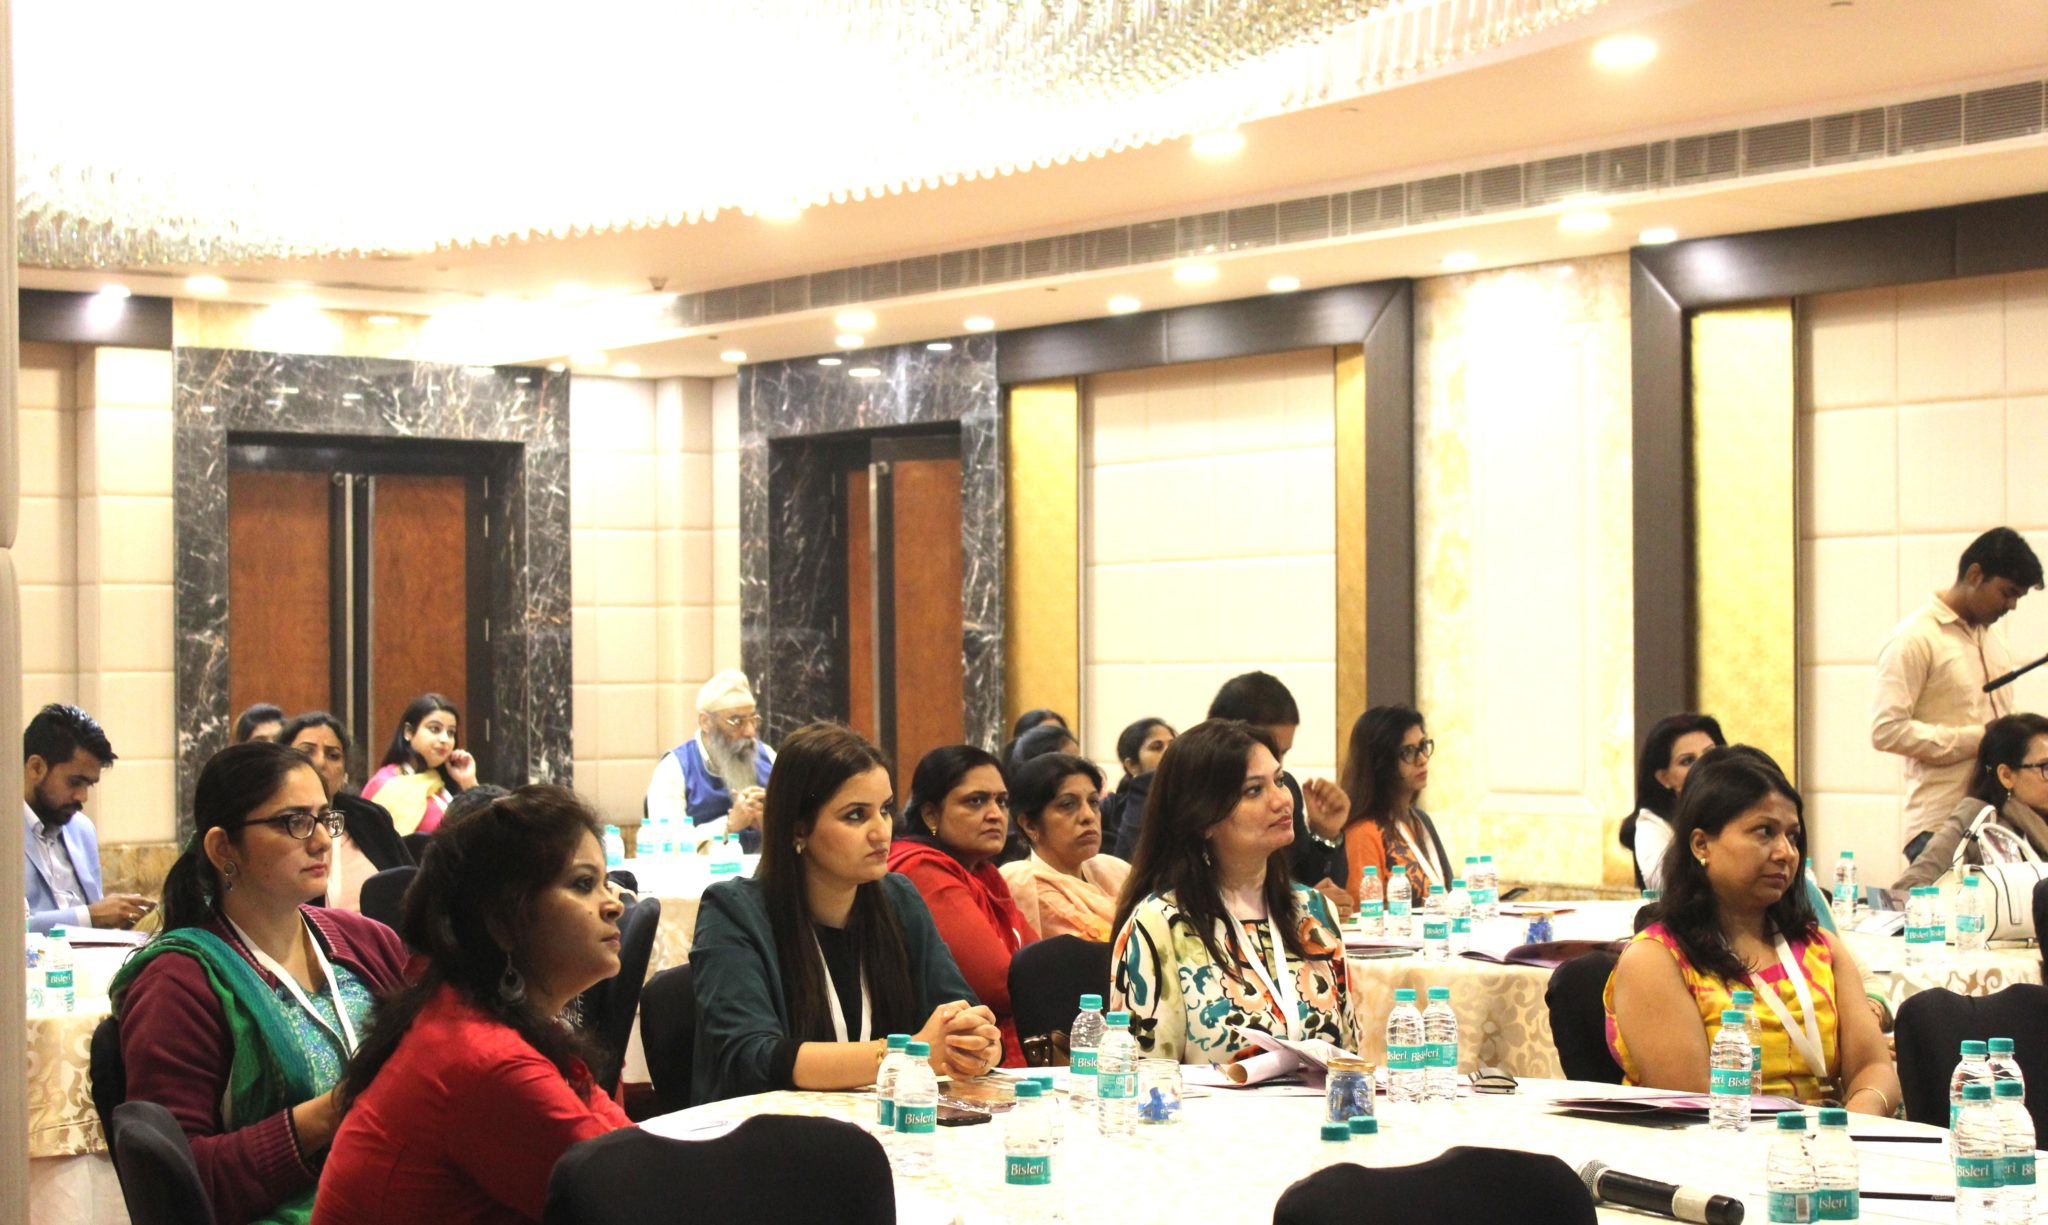 The conference provided a platform for doctors, researchers, women entrepreneurs, scientists, beauty & Health experts to come together and share their expertise, knowledge and insights from their respective fields.